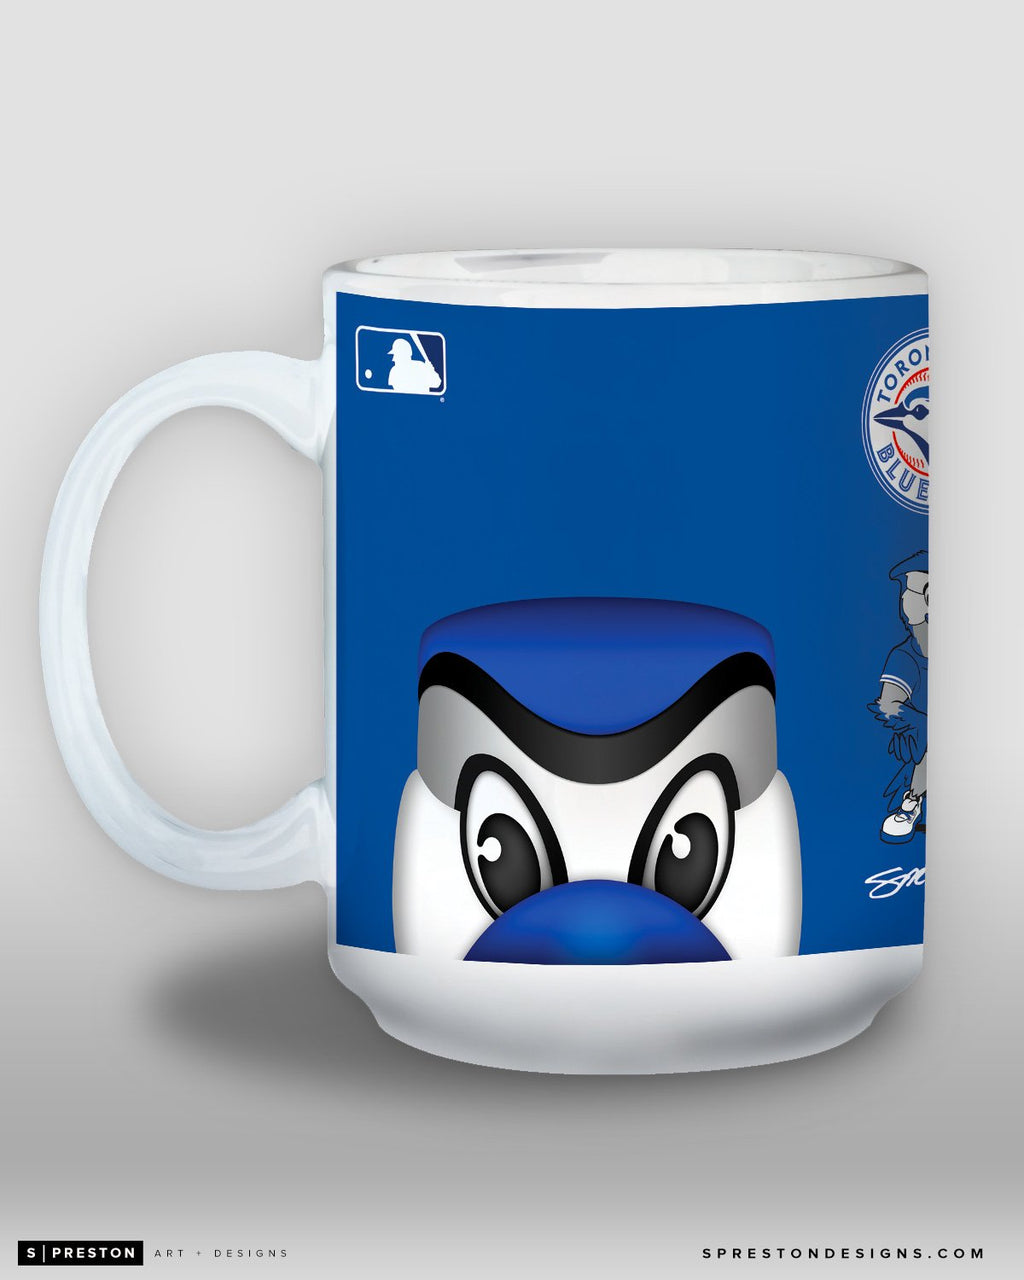 Minimalist Ace Coffee Mug - MLB Licensed - Toronto Blue Jays Mascot